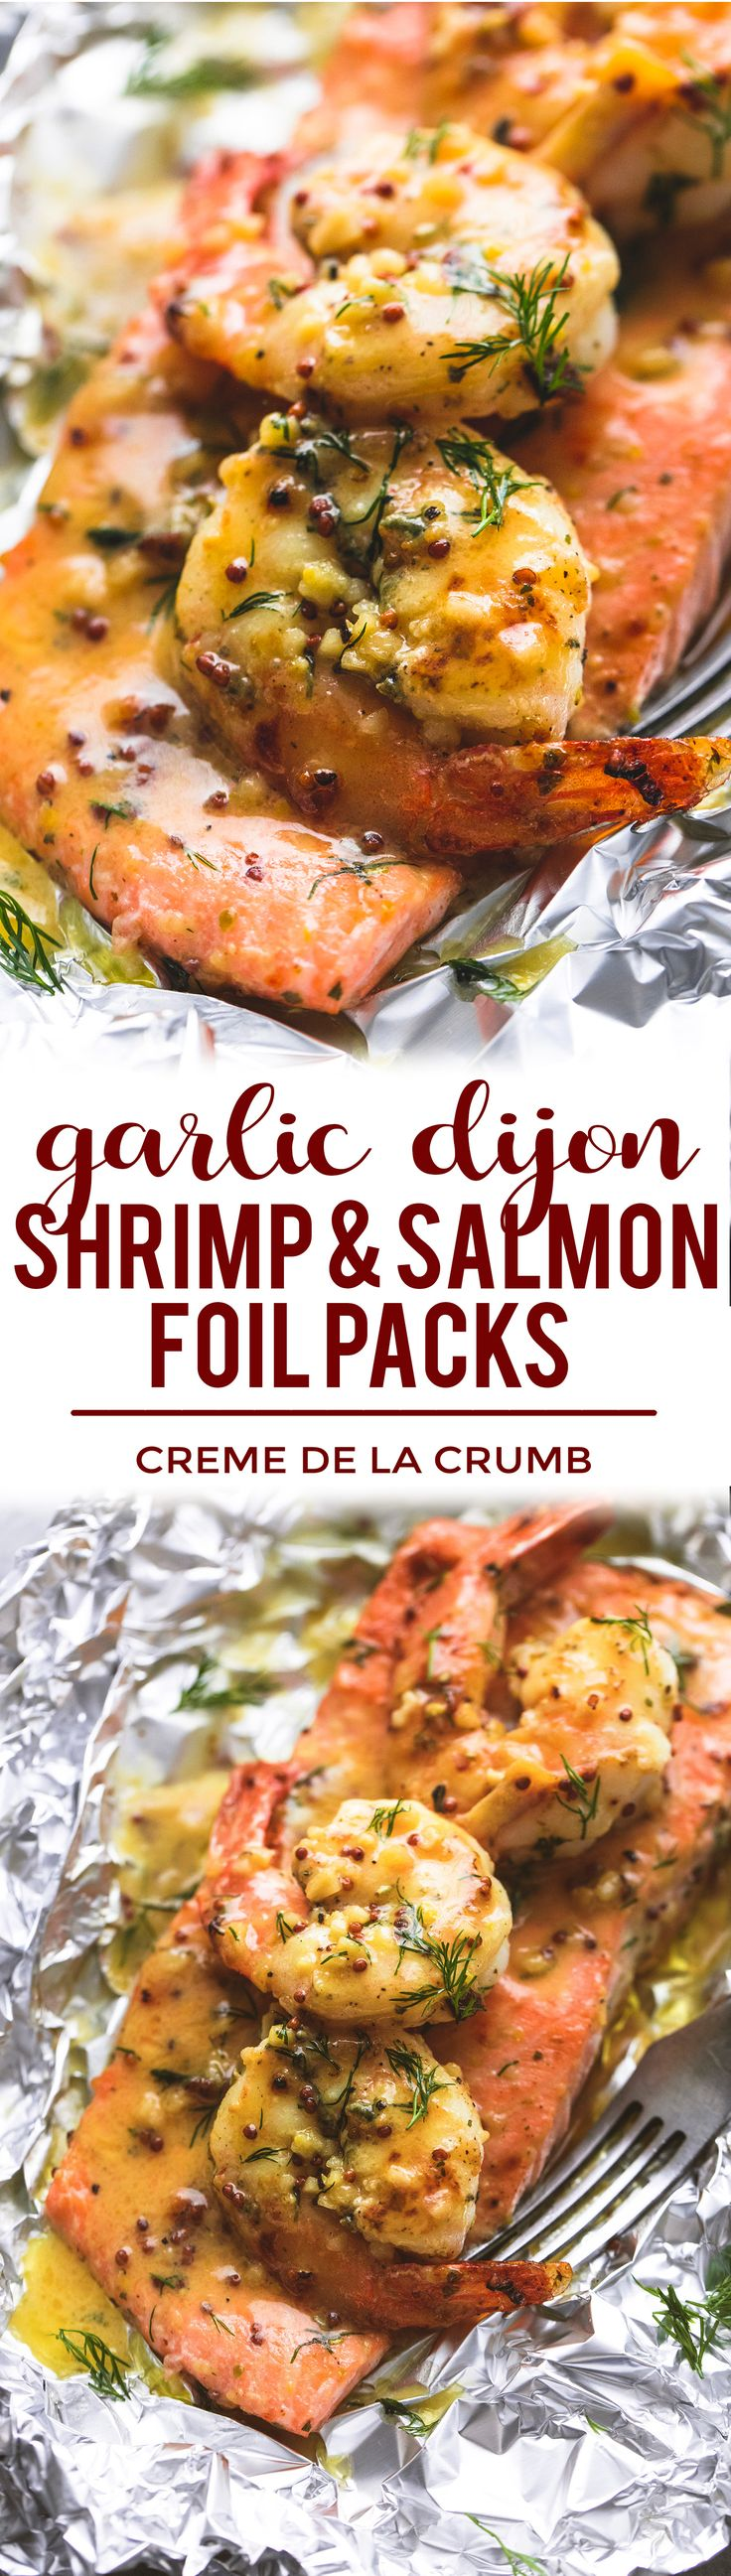 Bold and savory garlic dijon shrimp and salmon foil packs are loaded with your favorite seafood and the most incredible tangy honey dijon sauce | lecremedelacrumb.com